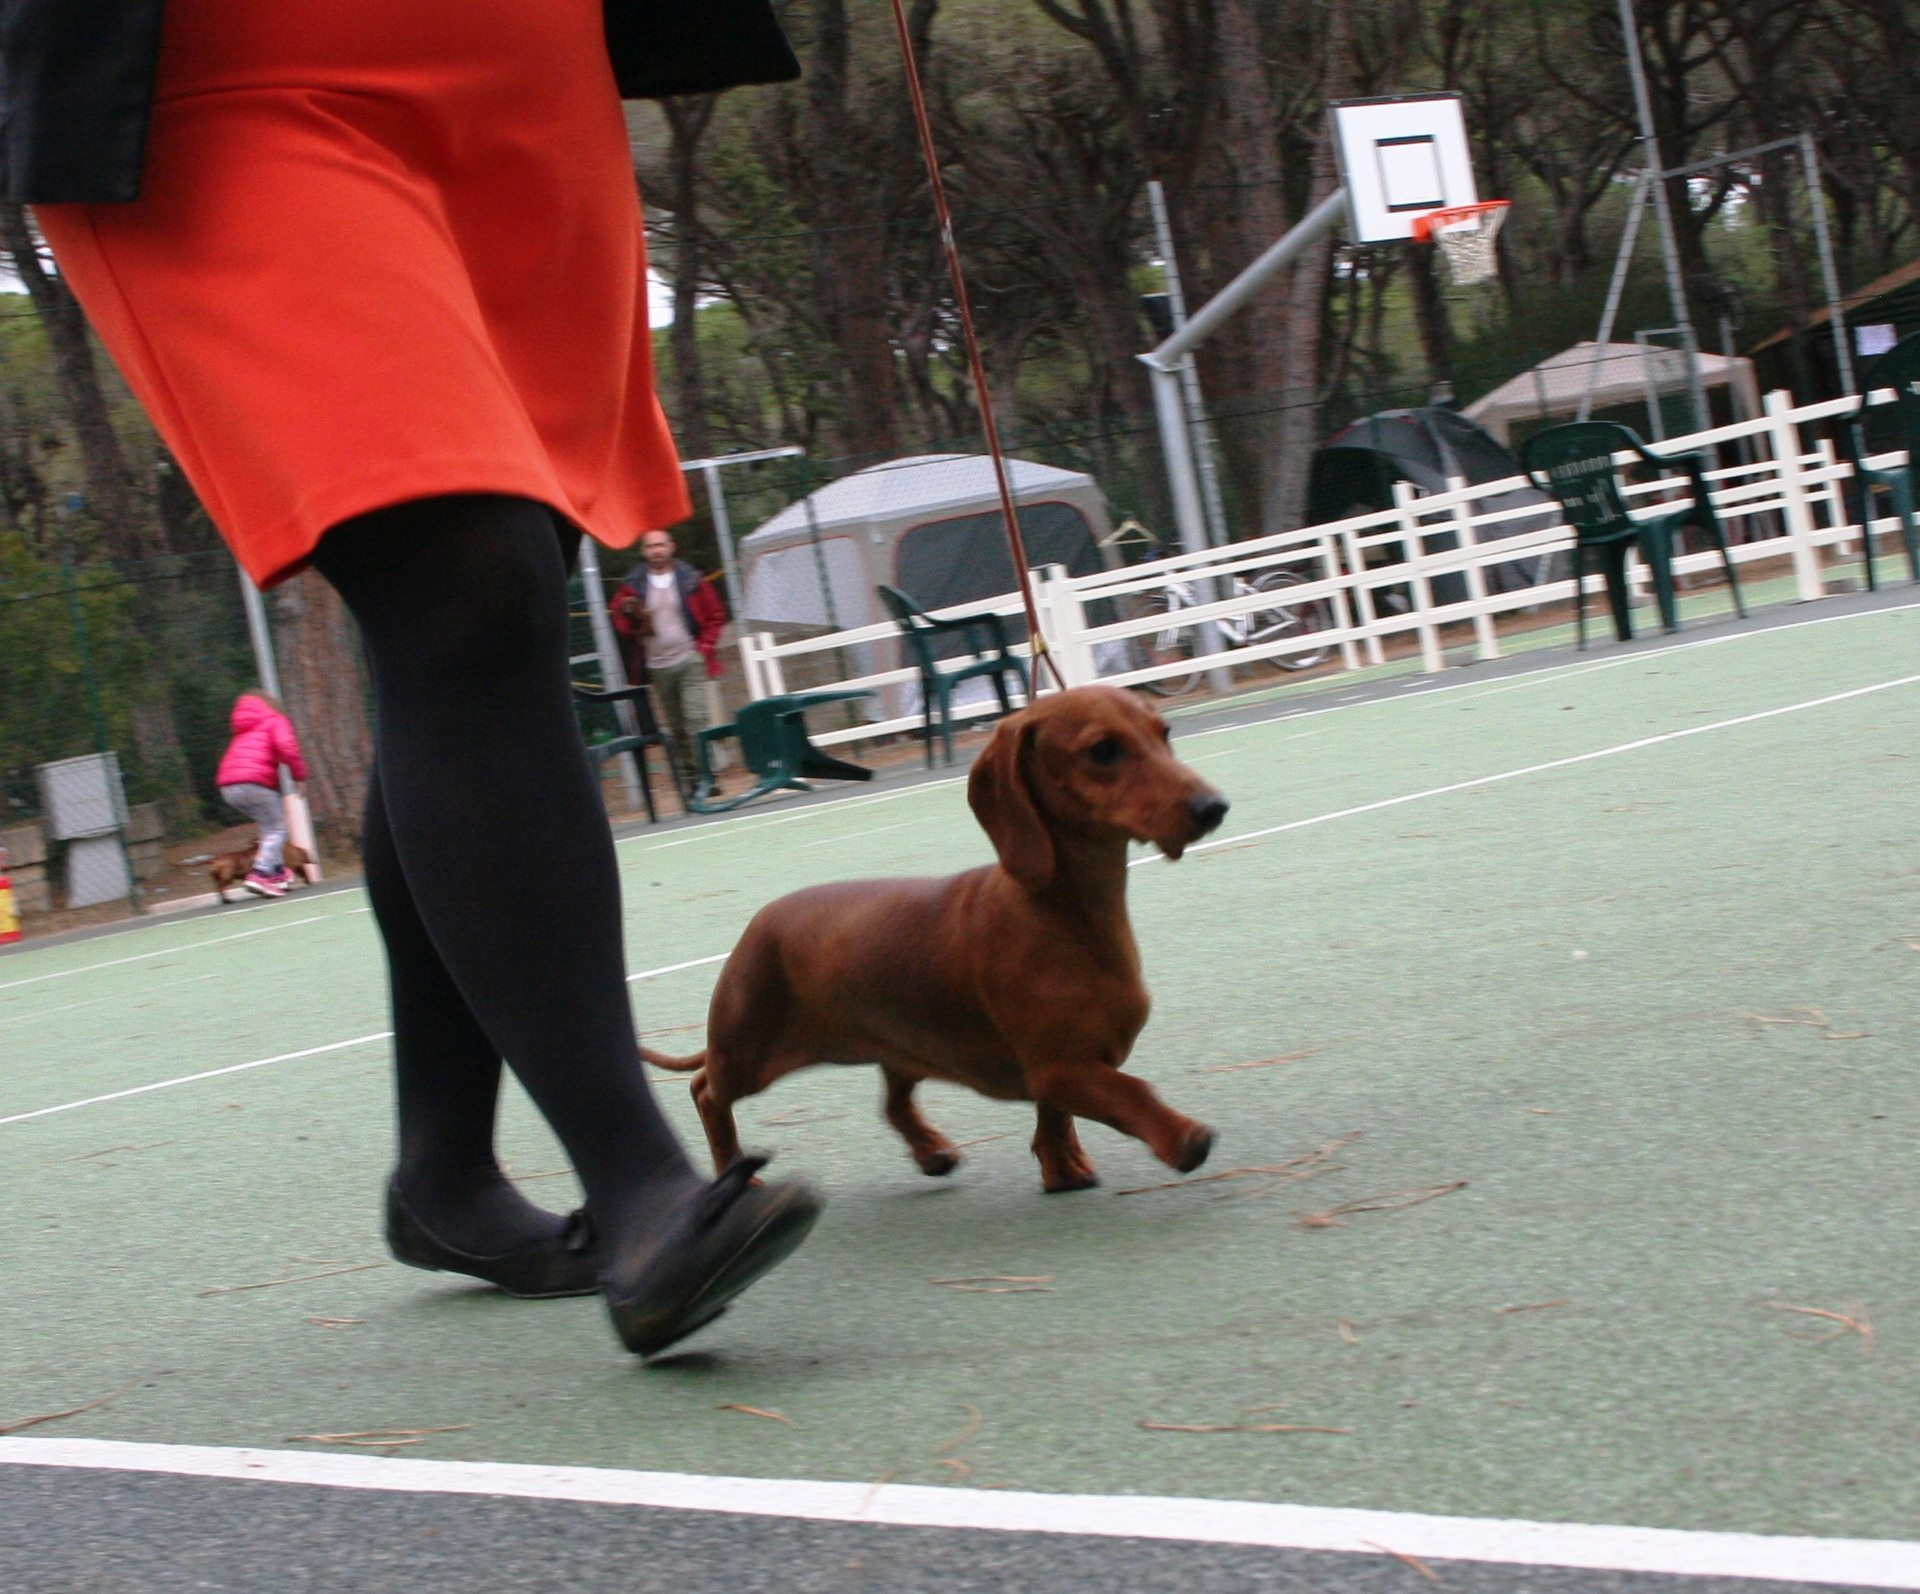 Dachshound standard in moviment